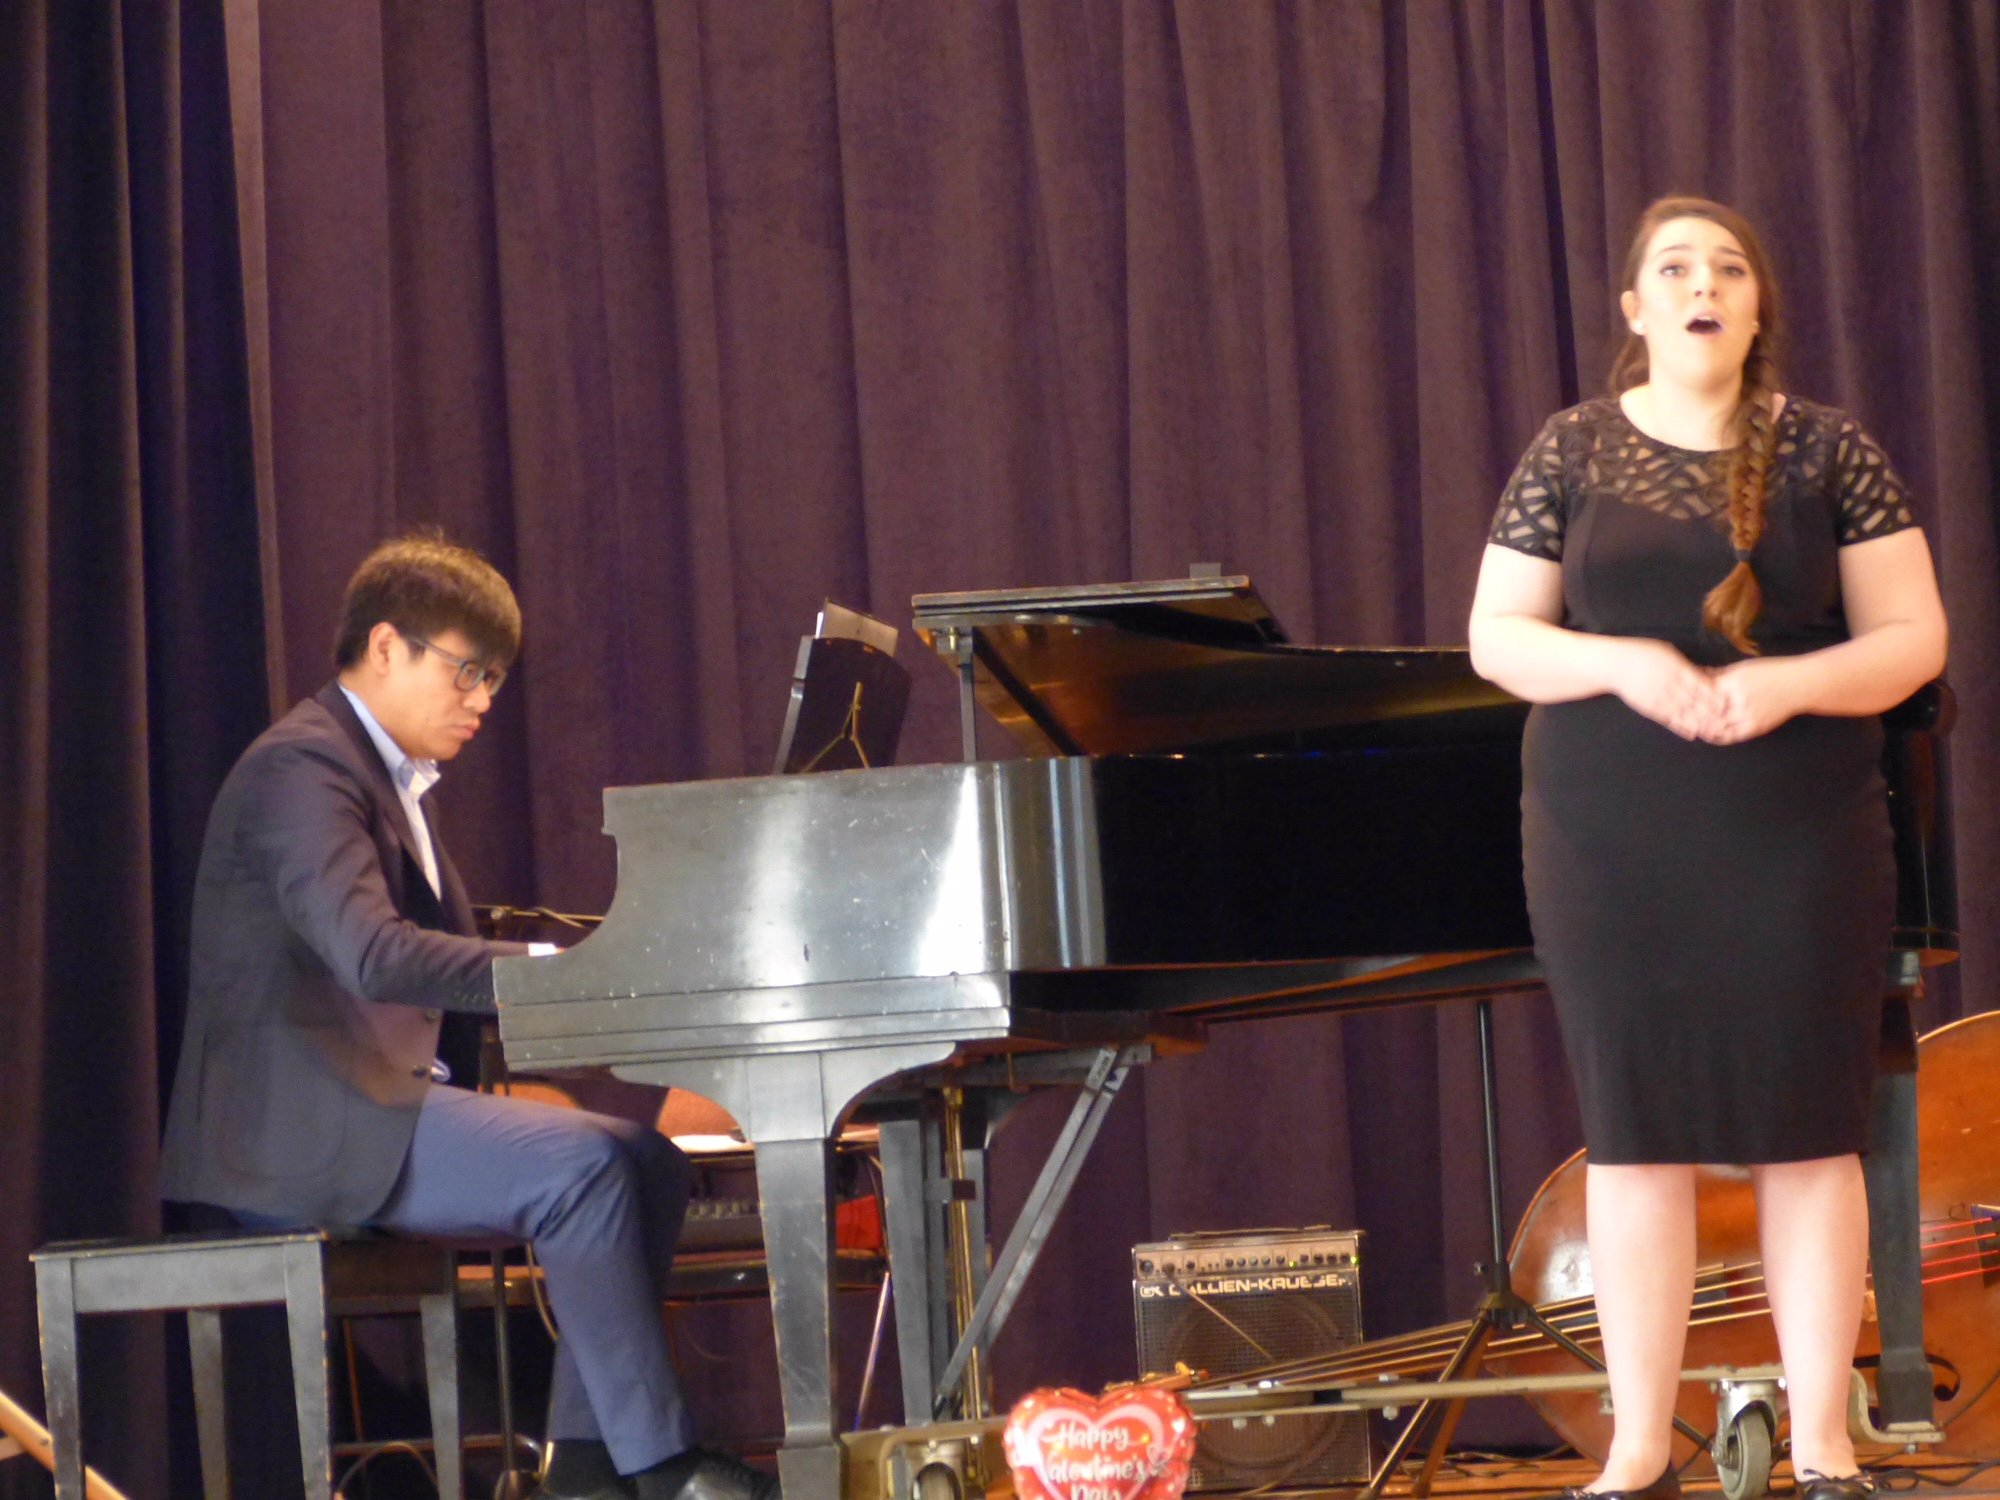 Kayla Sandavo and her accompanist, Hao Wu